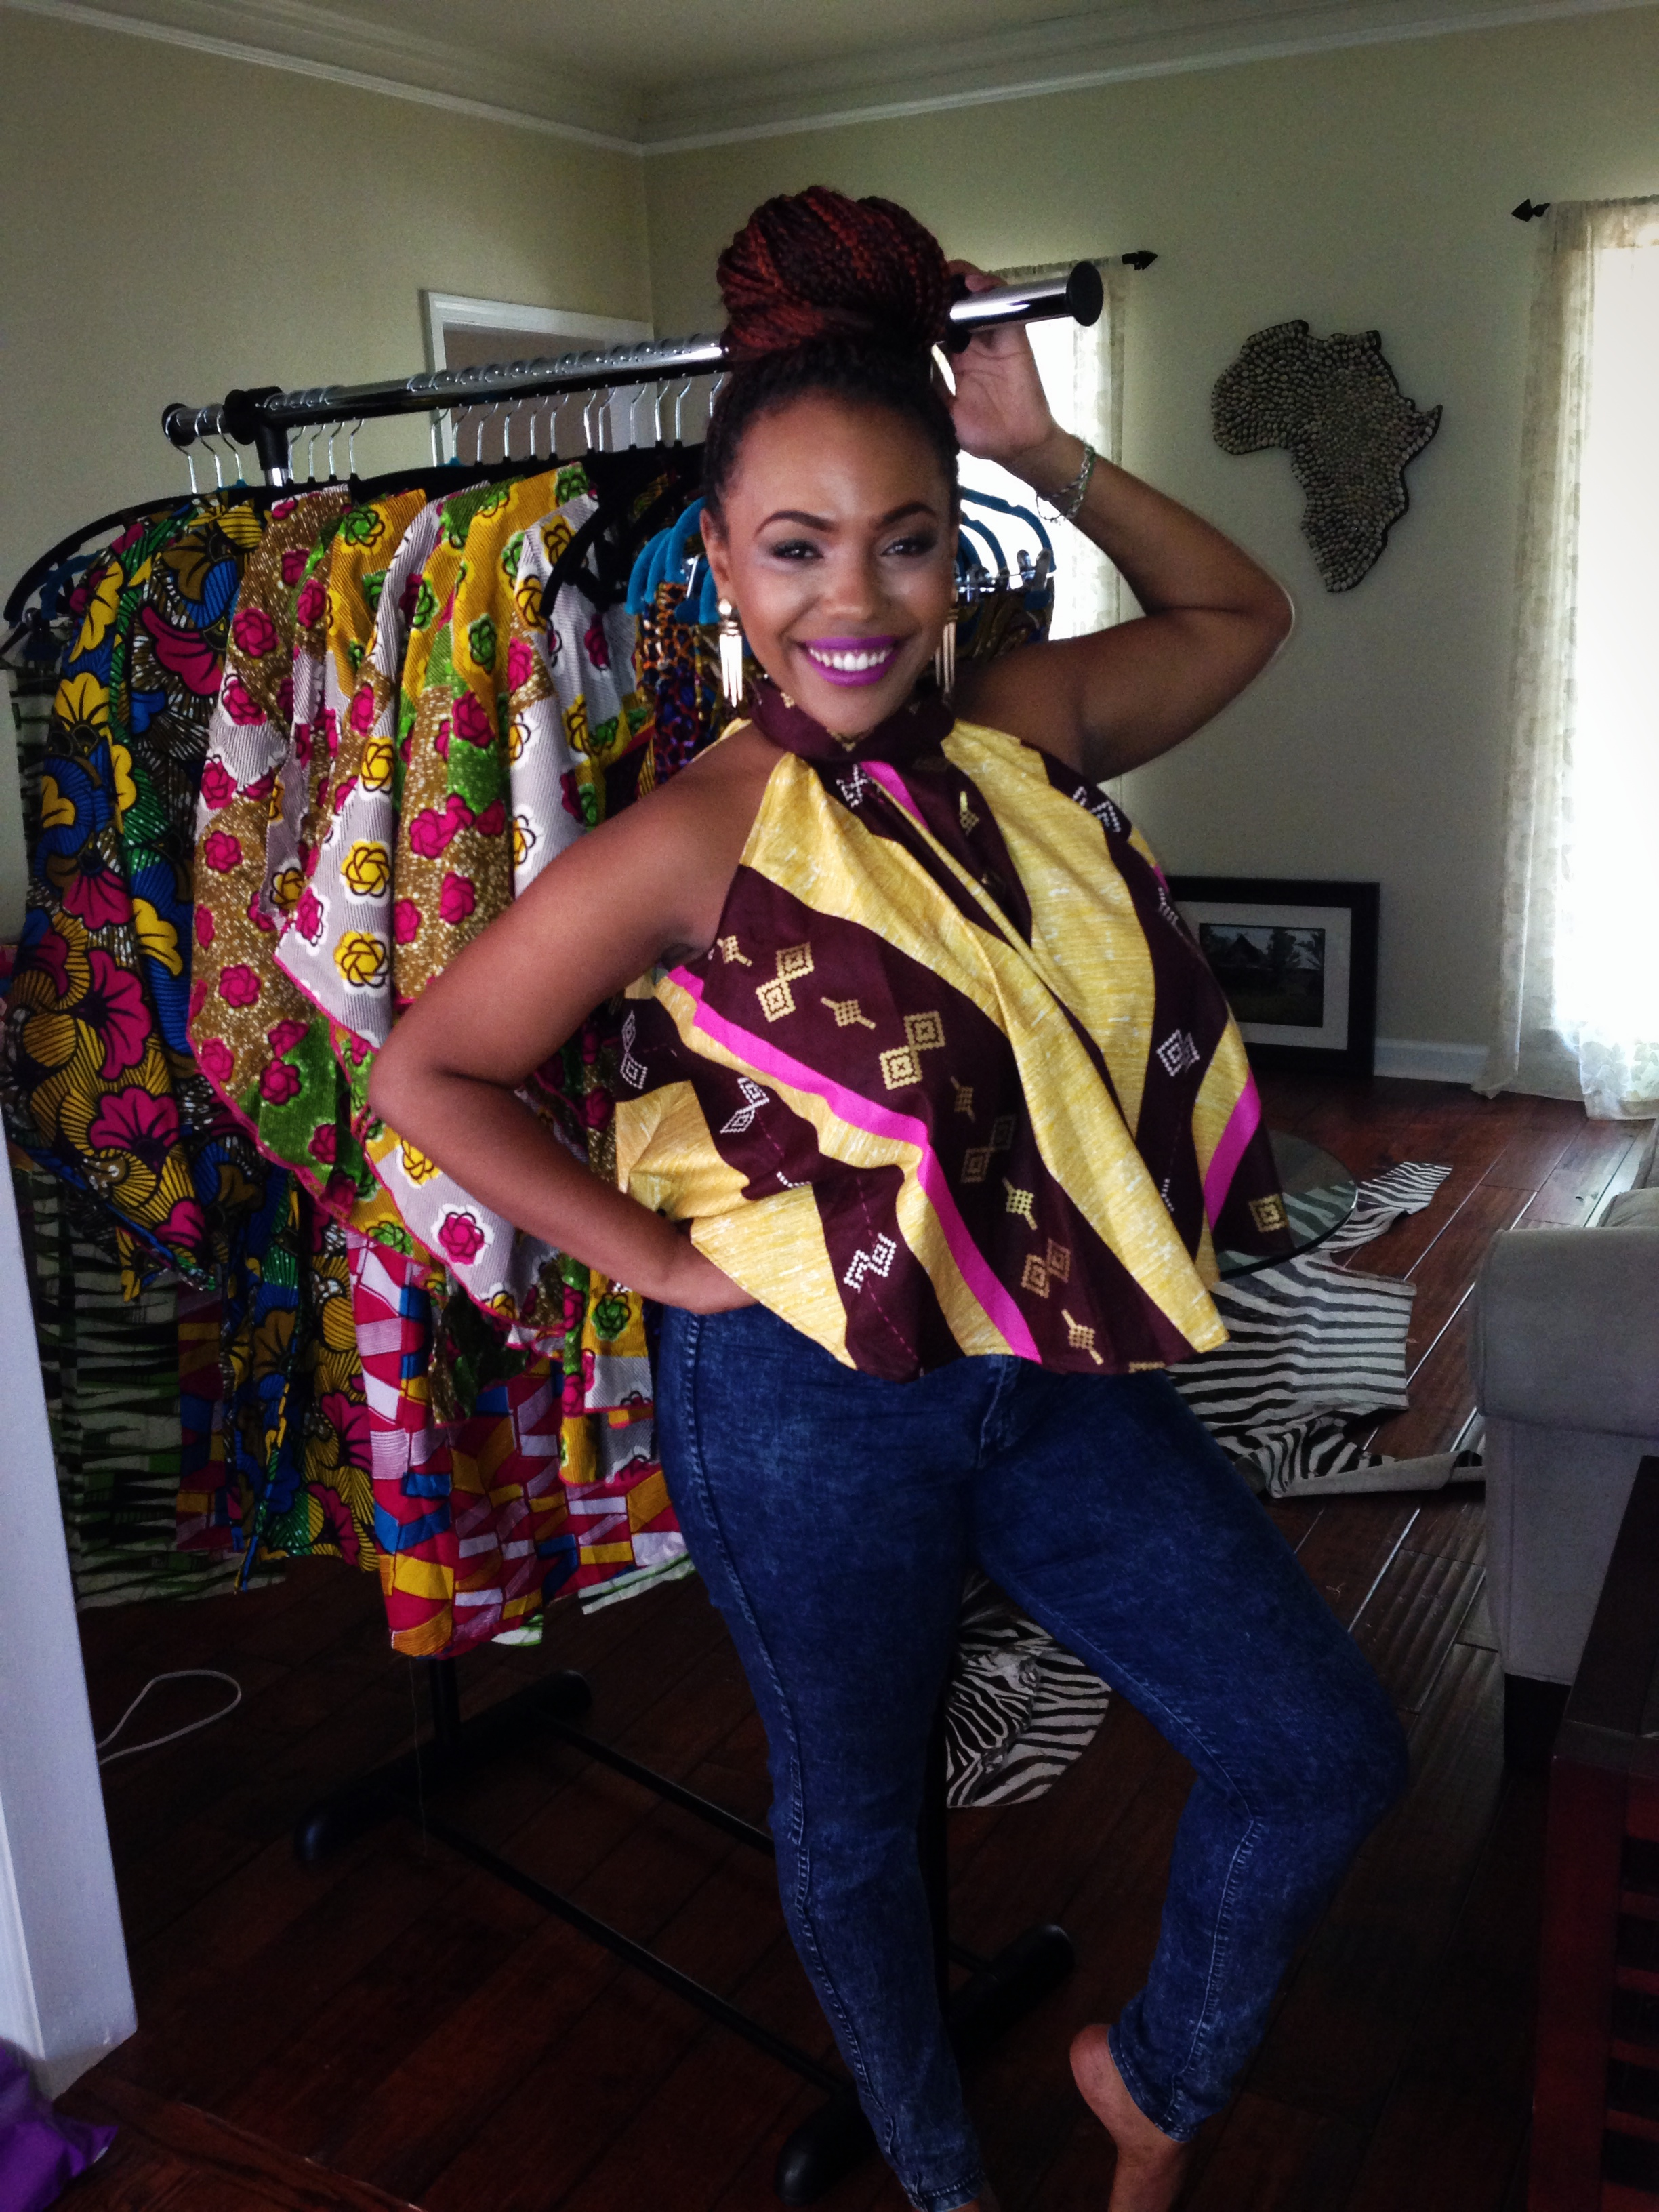 Archel Bernard is hopeful that Liberia will beat Ebola -- and she can reopen her ready-to-wear clothing store in Monrovia.